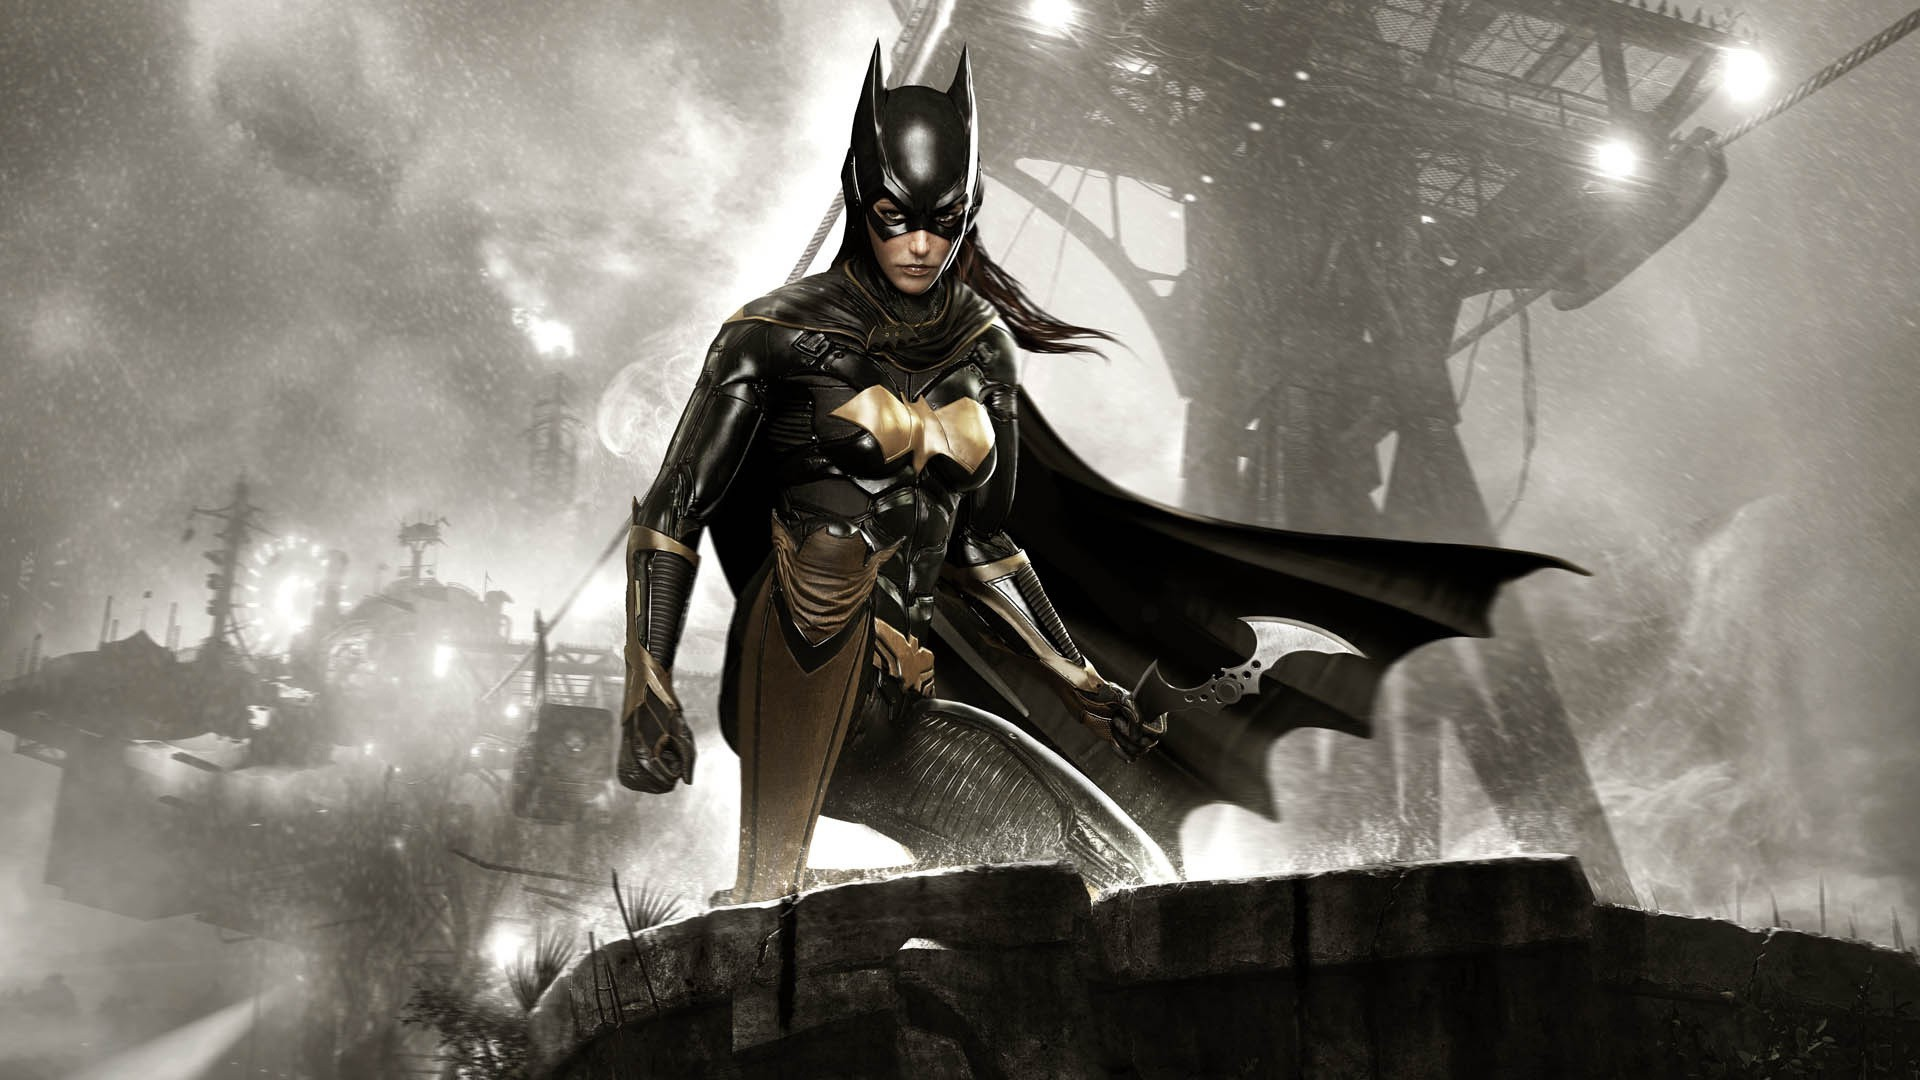 1920x1080 Batman Arkham Knight Batgirl